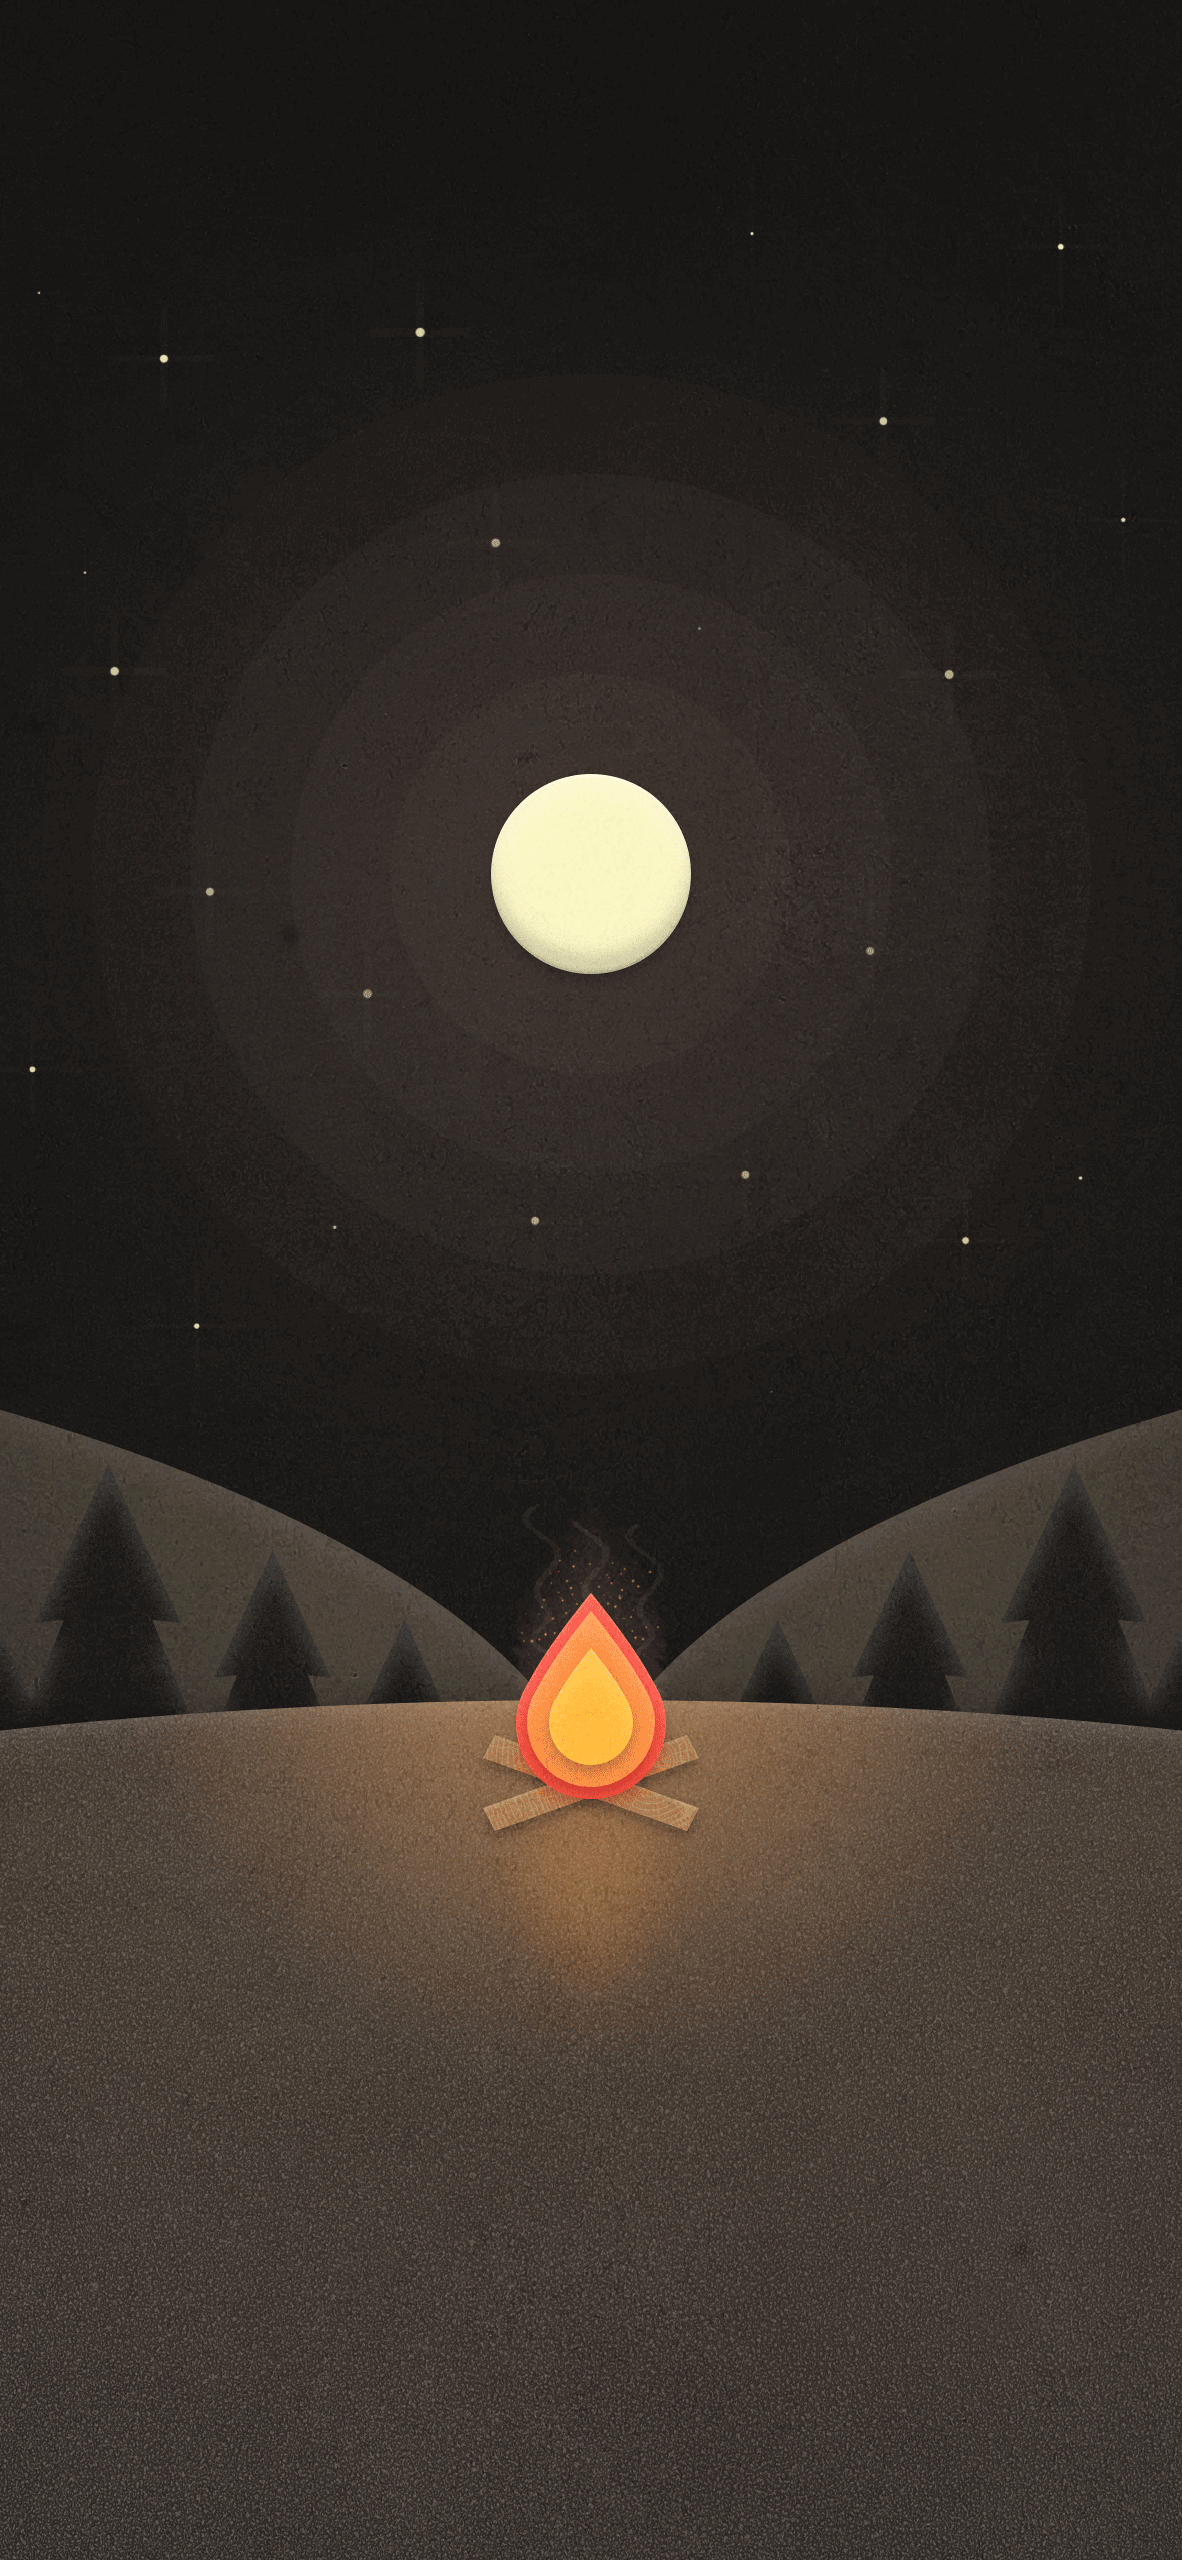 the best and beautiful campfire minimalist wallpaper for iphone hd